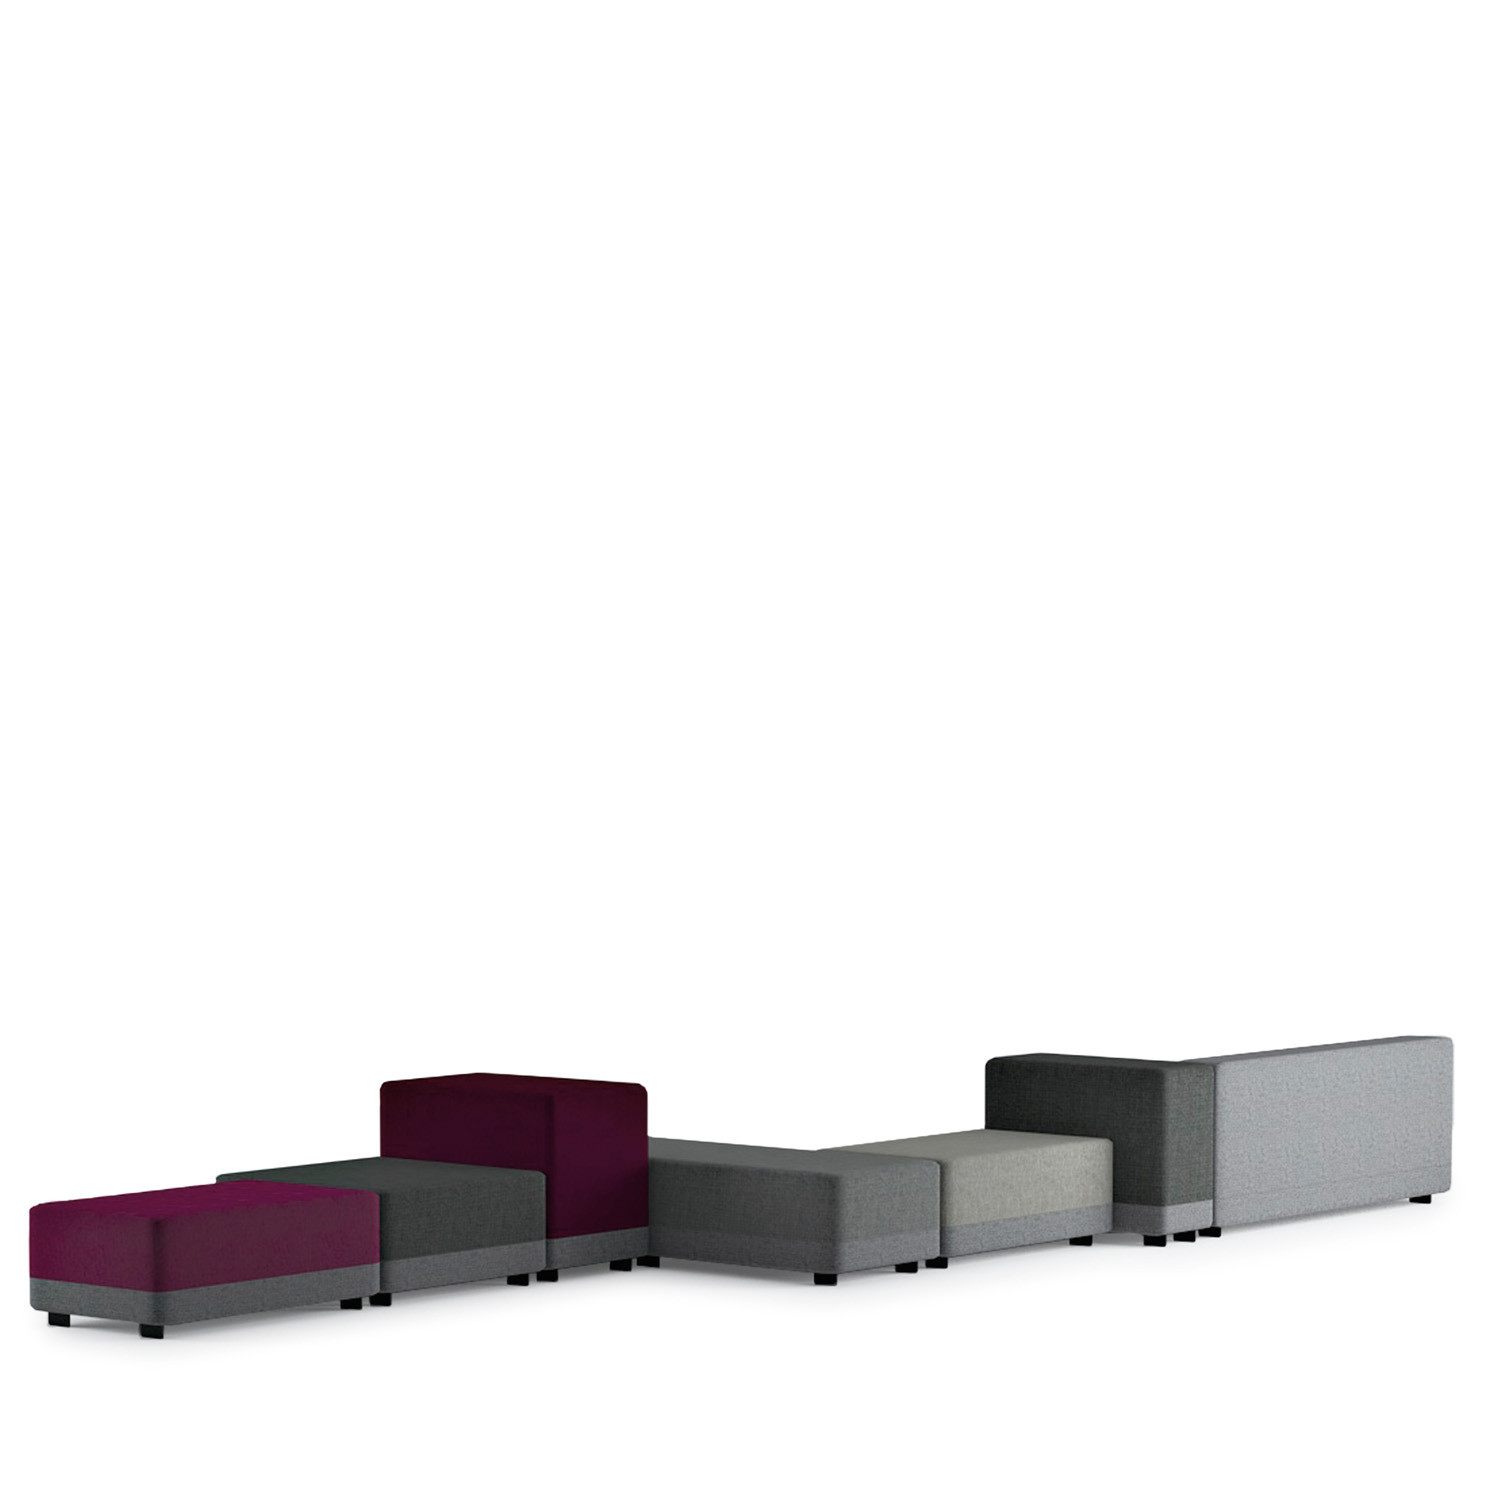 Courage Modular Sofa System